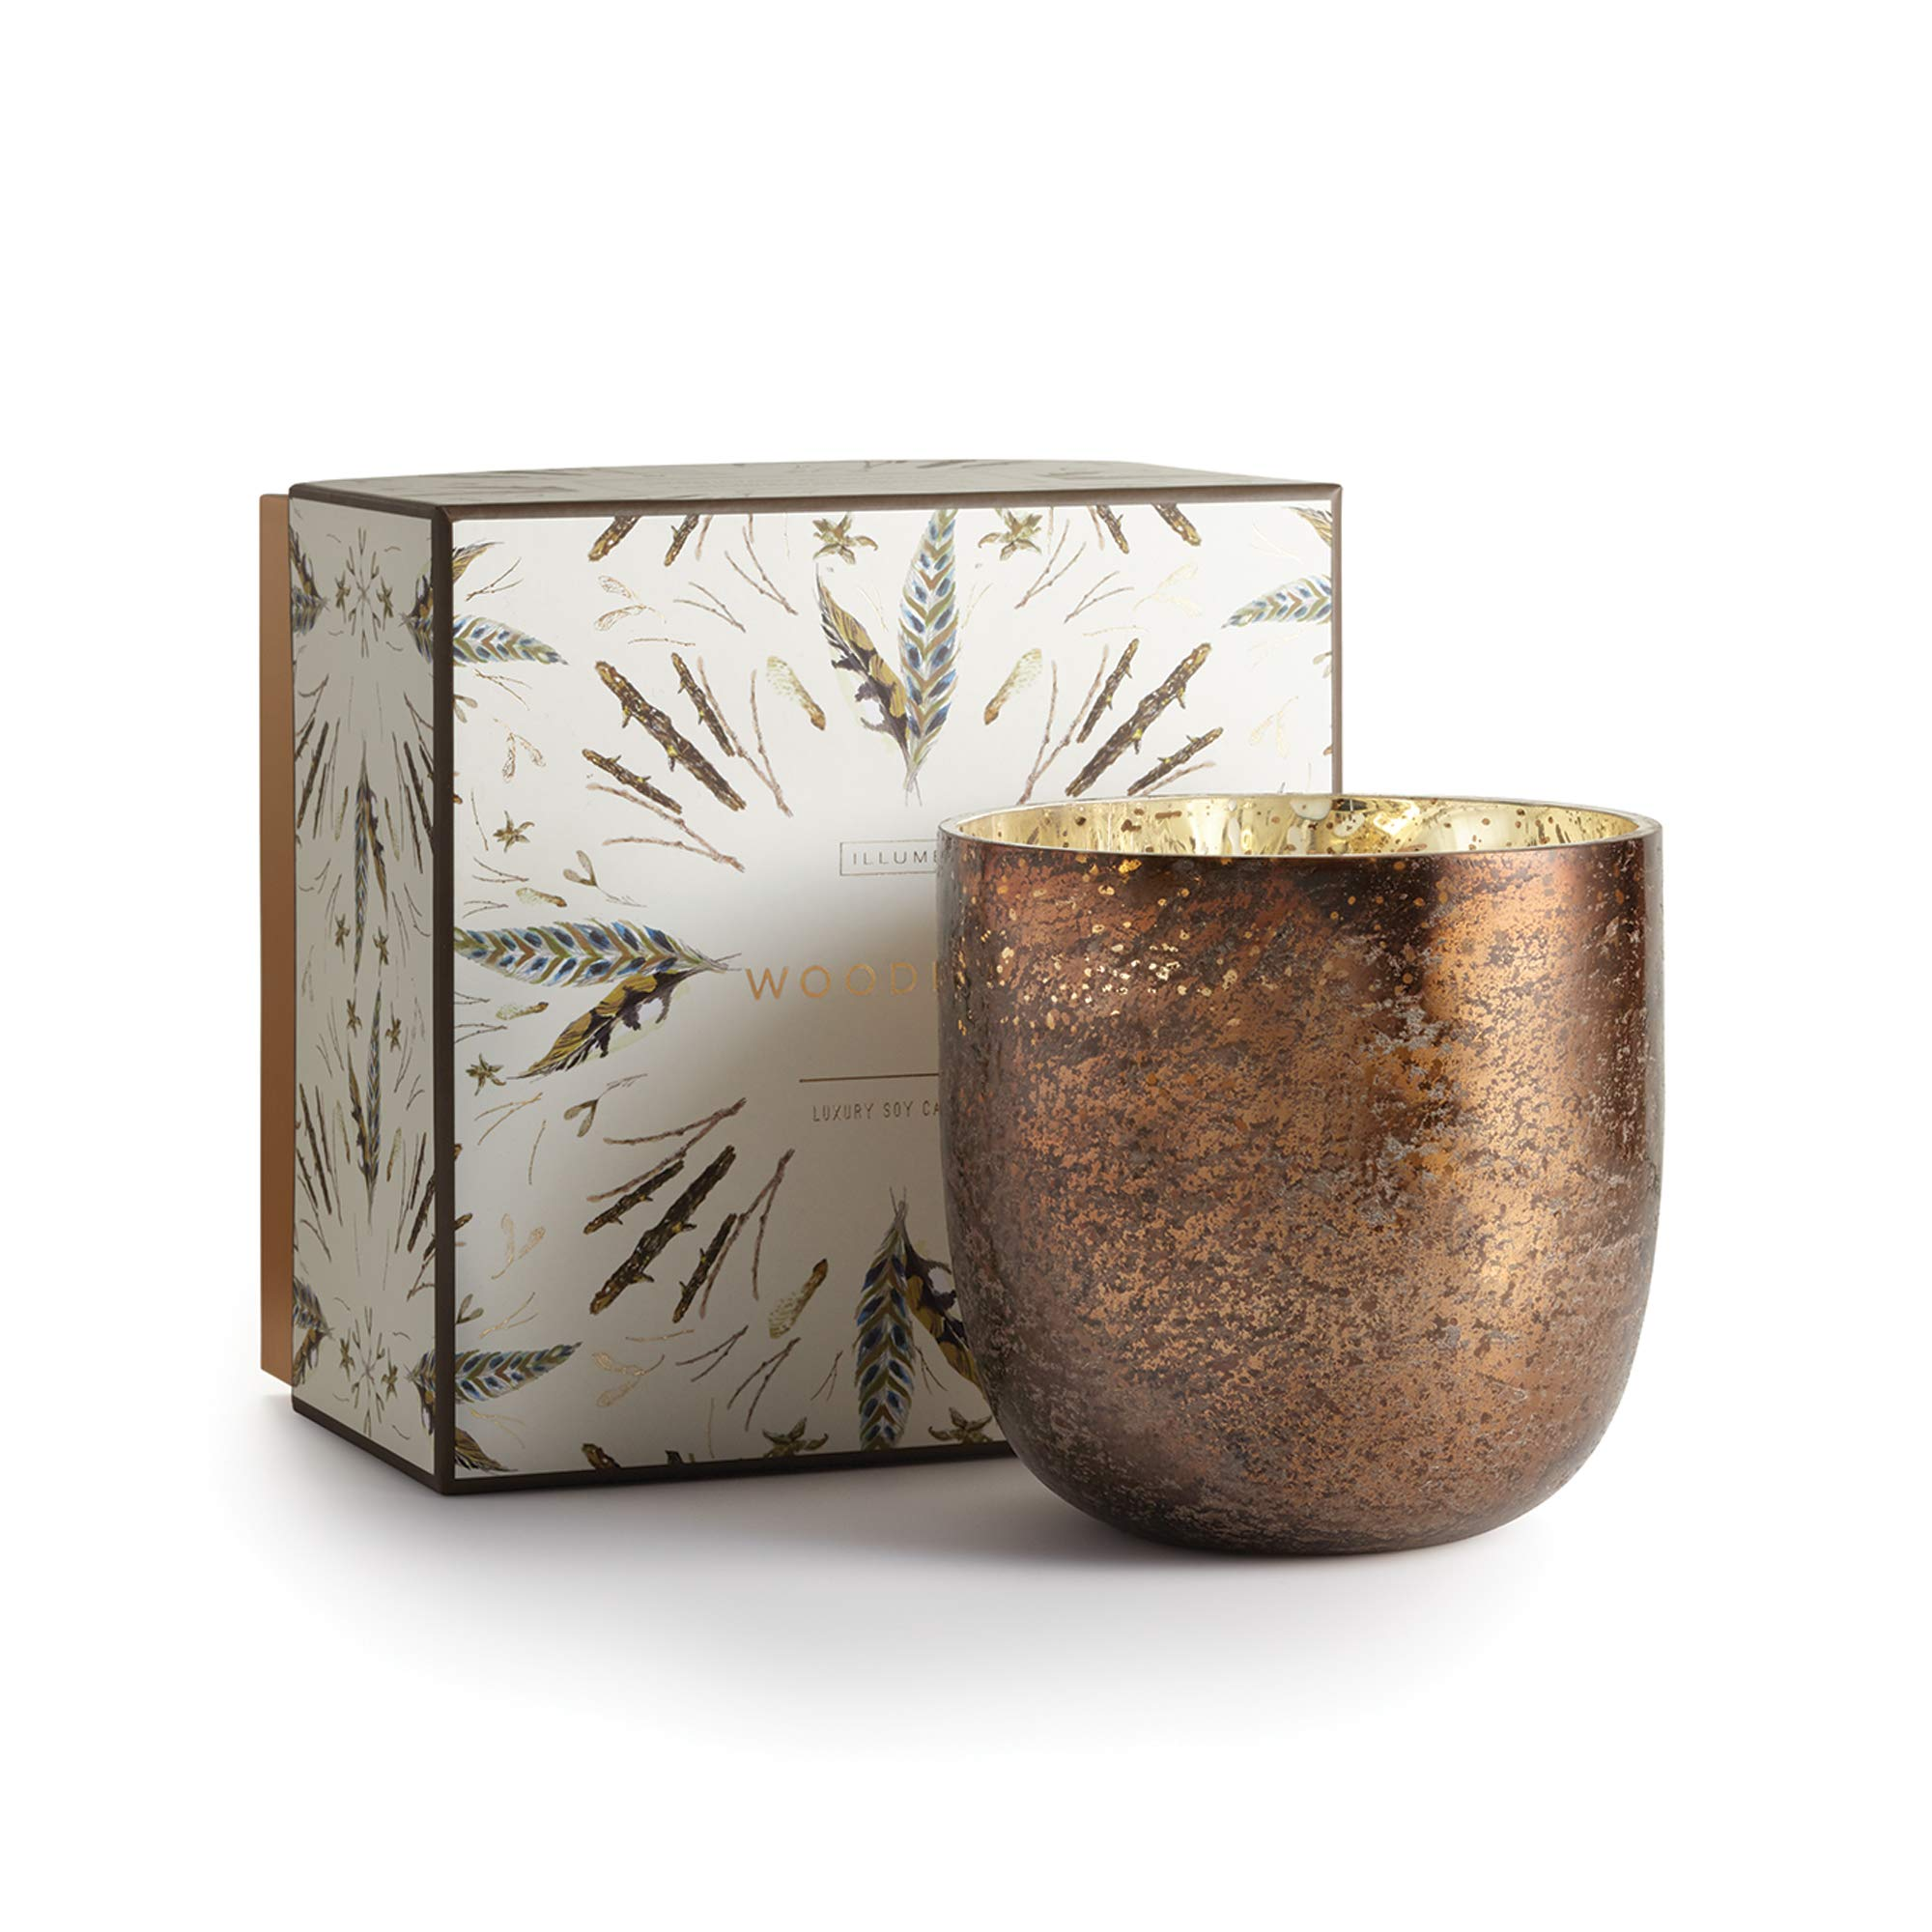 Illume Noble Holiday Collection Woodfire Luxe Box Sanded Mercury Glass, 22 oz Candle by Illume